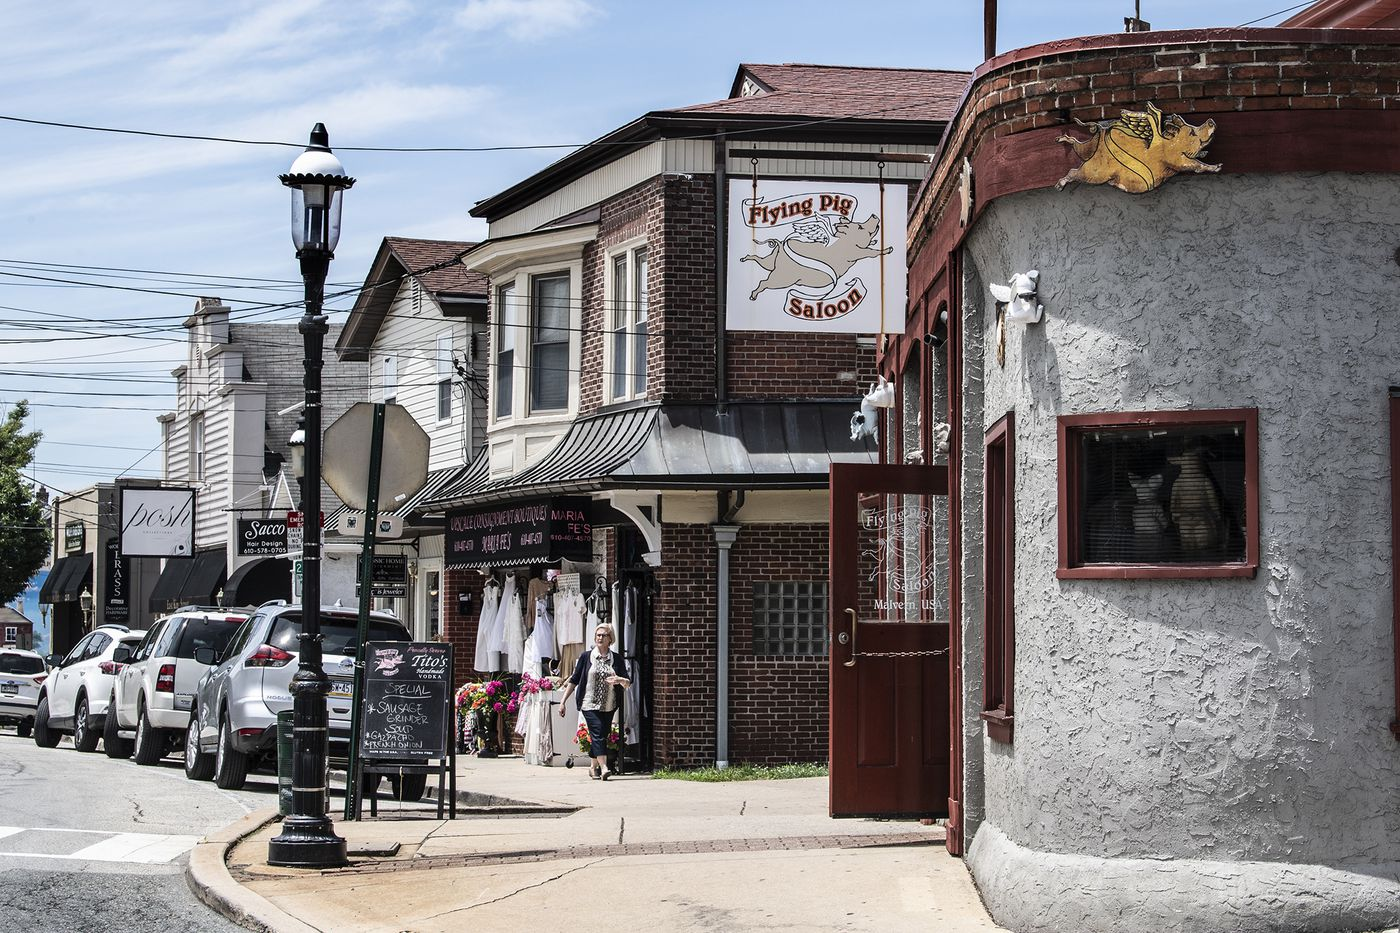 Owner Steve Iacobucci says the Flying Pig Saloon hasn't changed much over the years, though the town around it has.